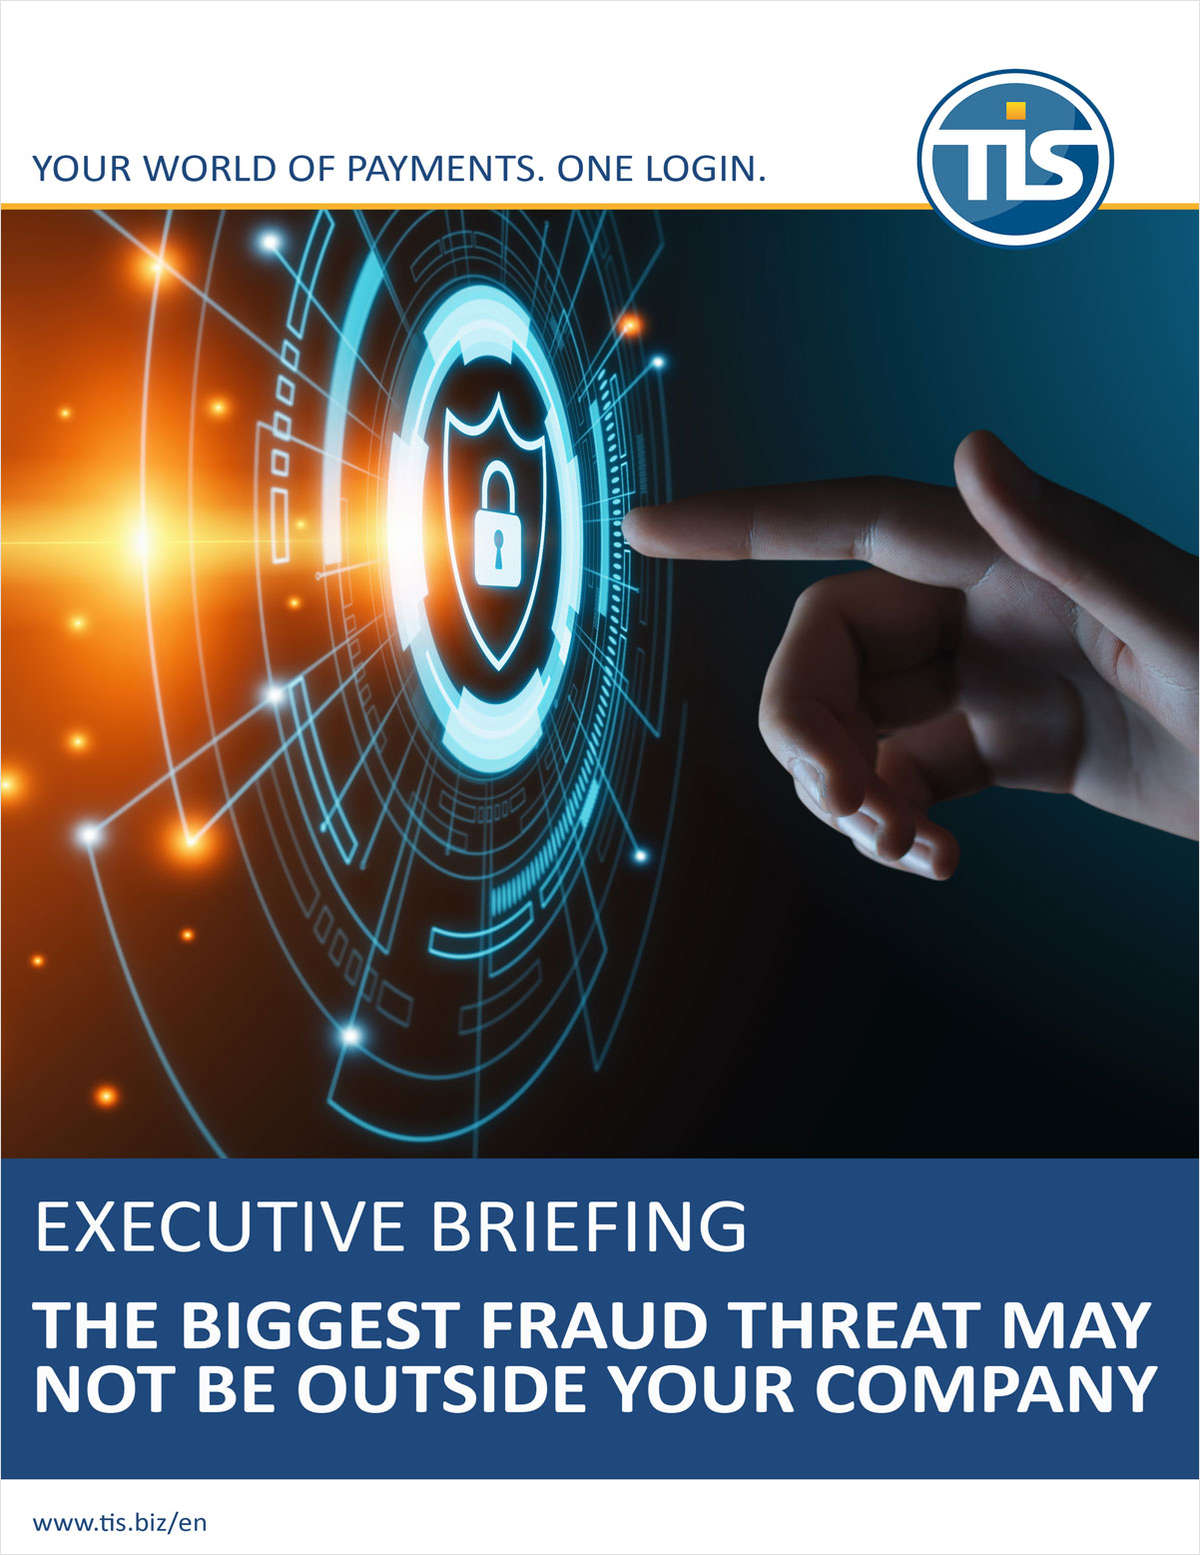 Executive Briefing - The Biggest Fraud Threat May Not Be Outside Your Company